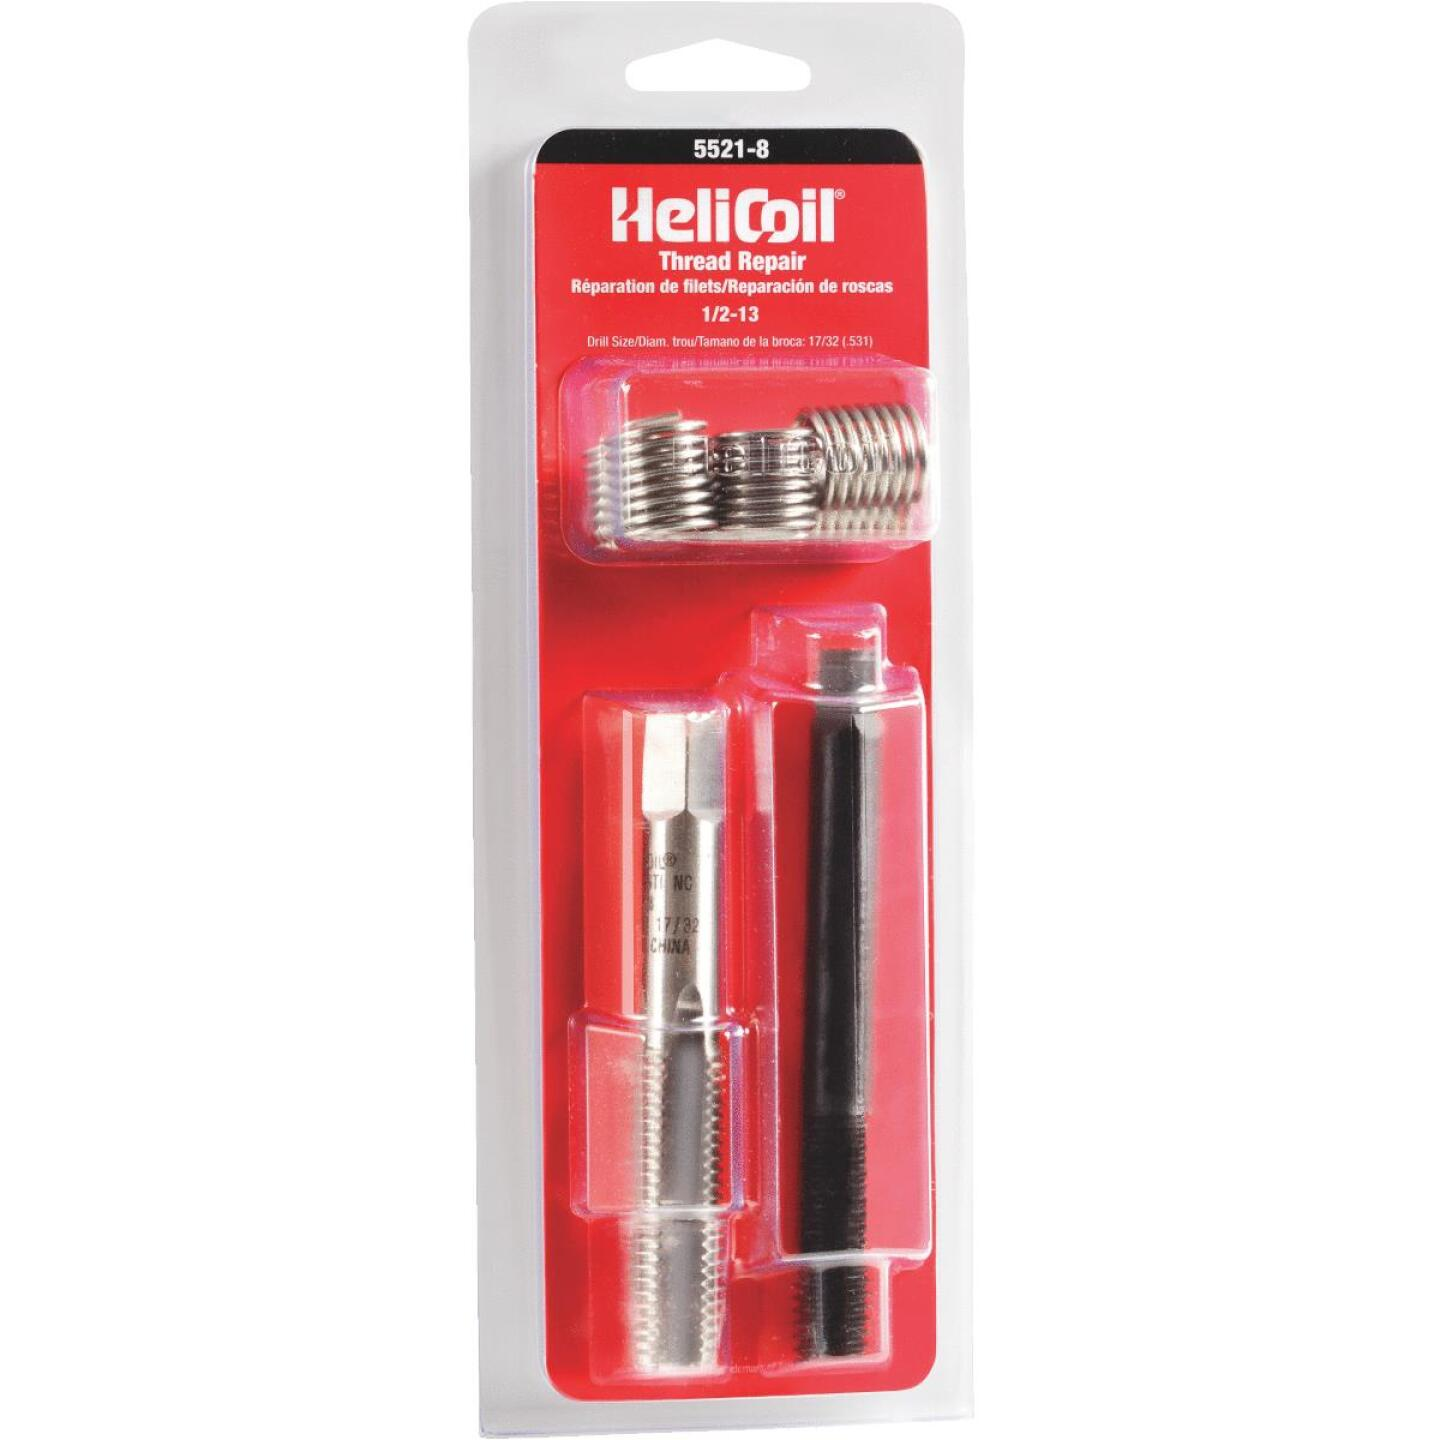 HeliCoil 1/2-13 Stainless Steel Thread Repair Kit Image 1